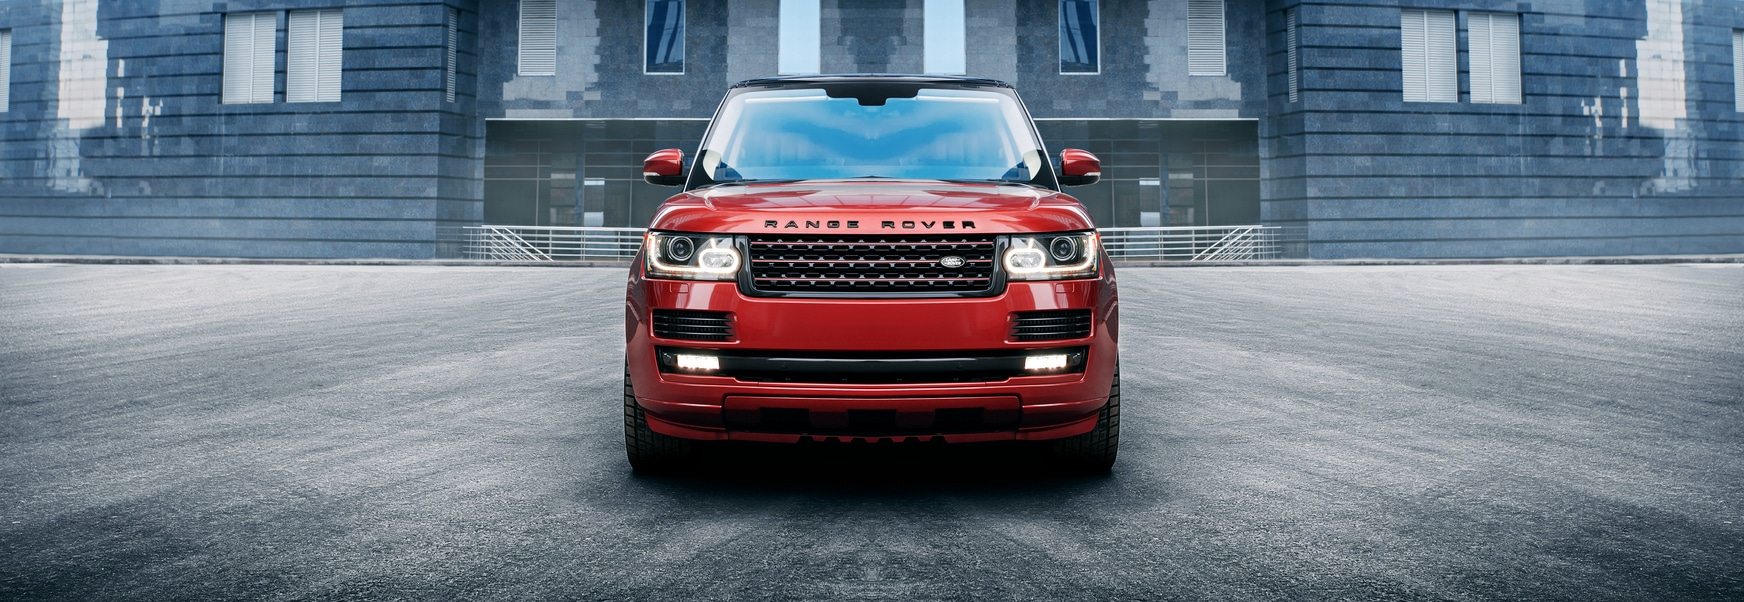 Finance your Range Rover with Fast Car Finance